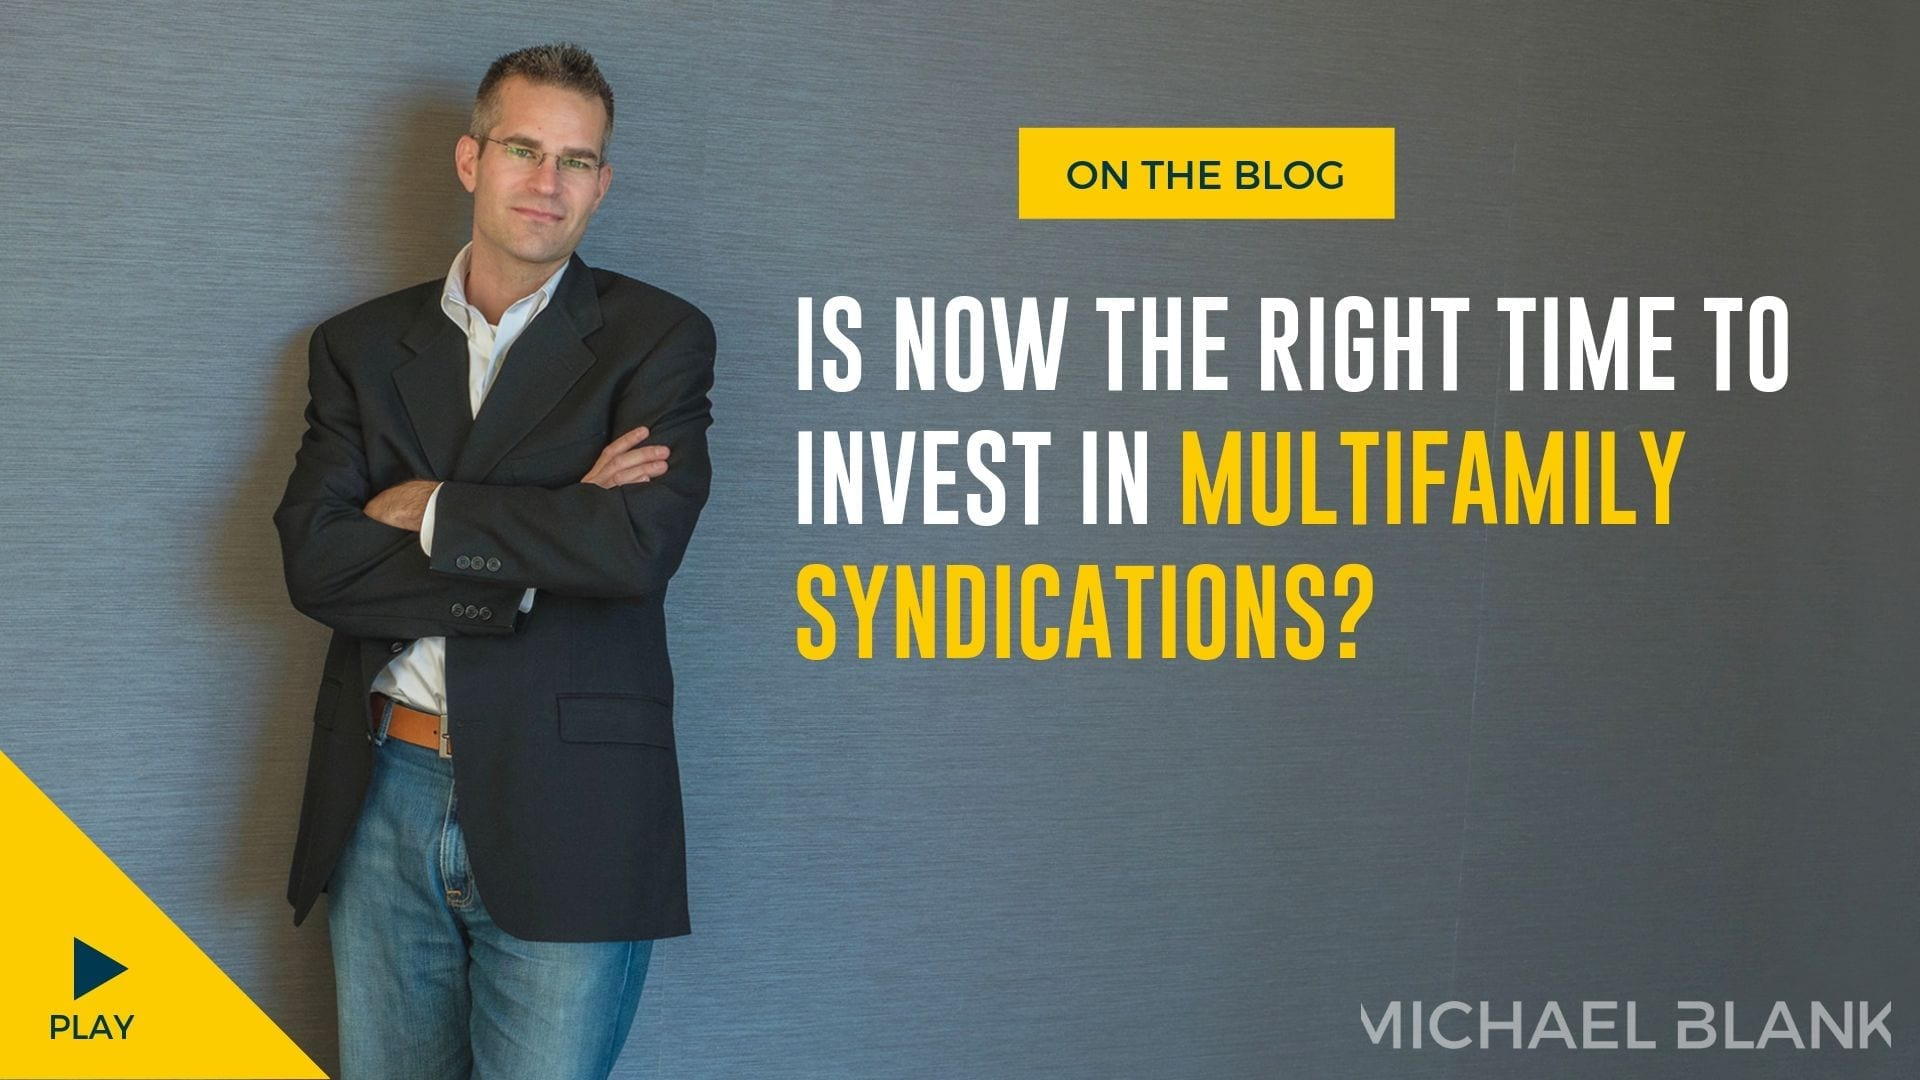 Is Now the Right Time to Invest in Multifamily Syndications?